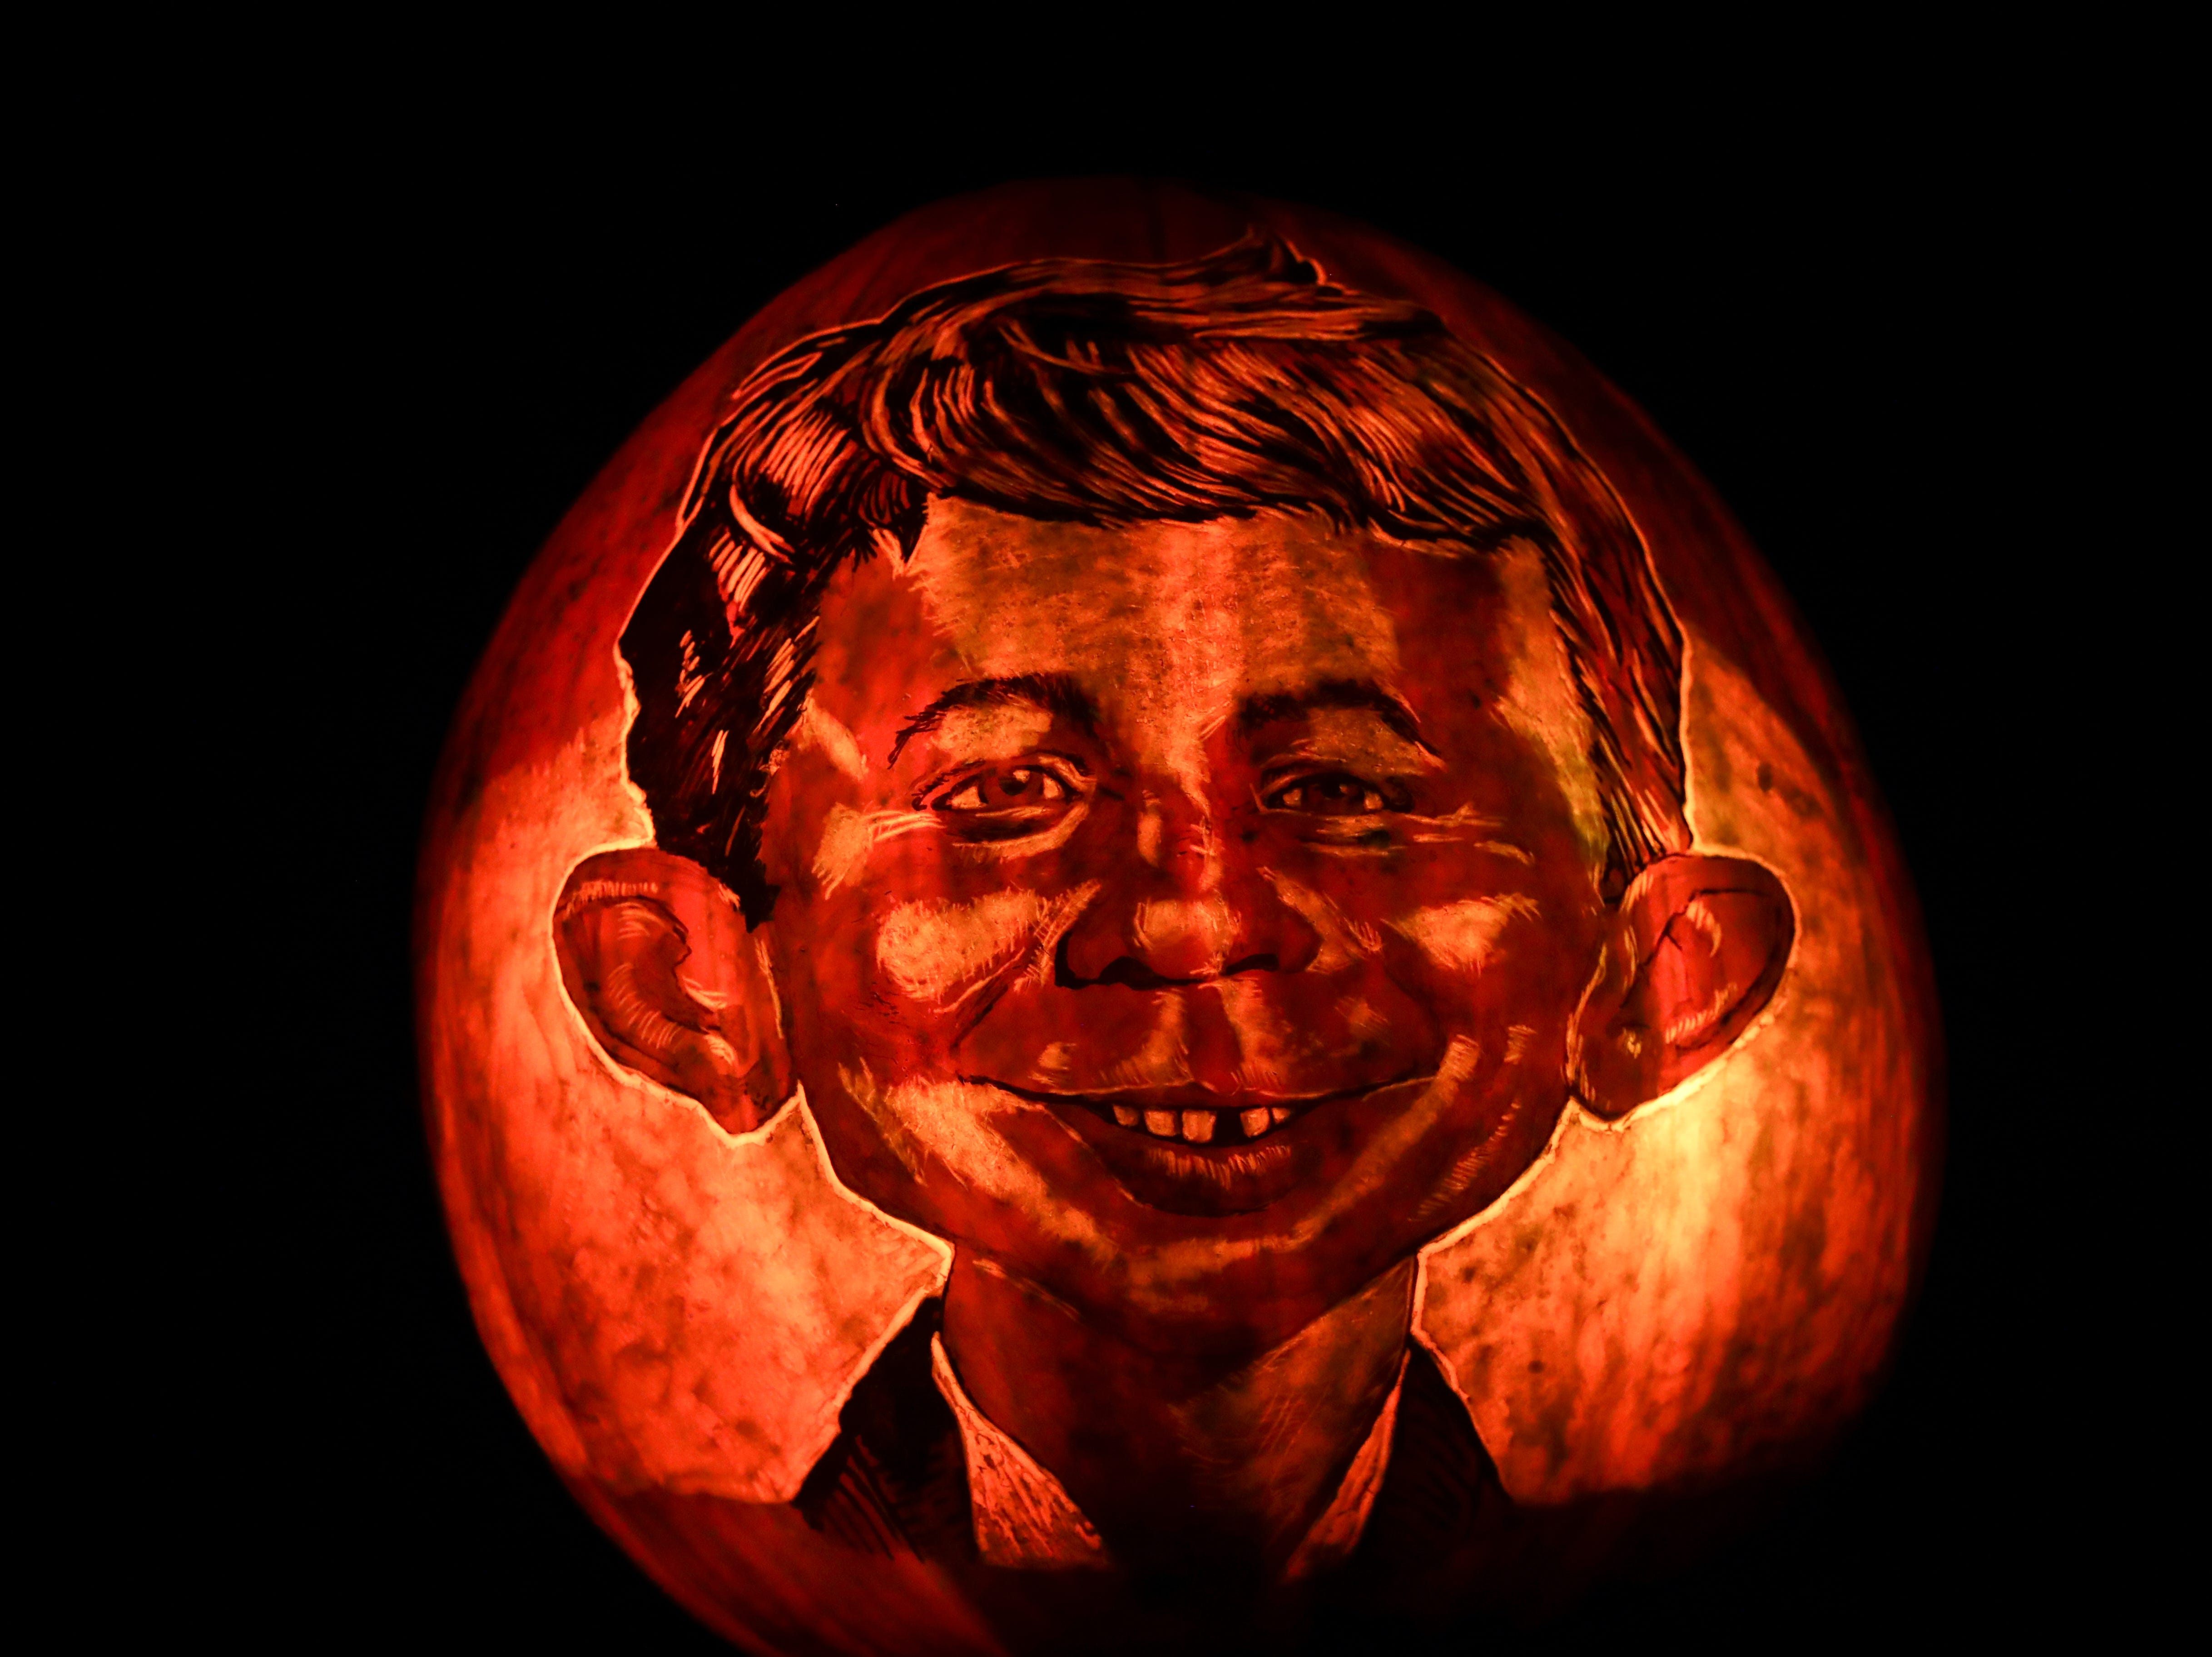 Mad Magazine has it's own section at this year's Jack O' Lantern Spectacular. Oct. 9, 2018